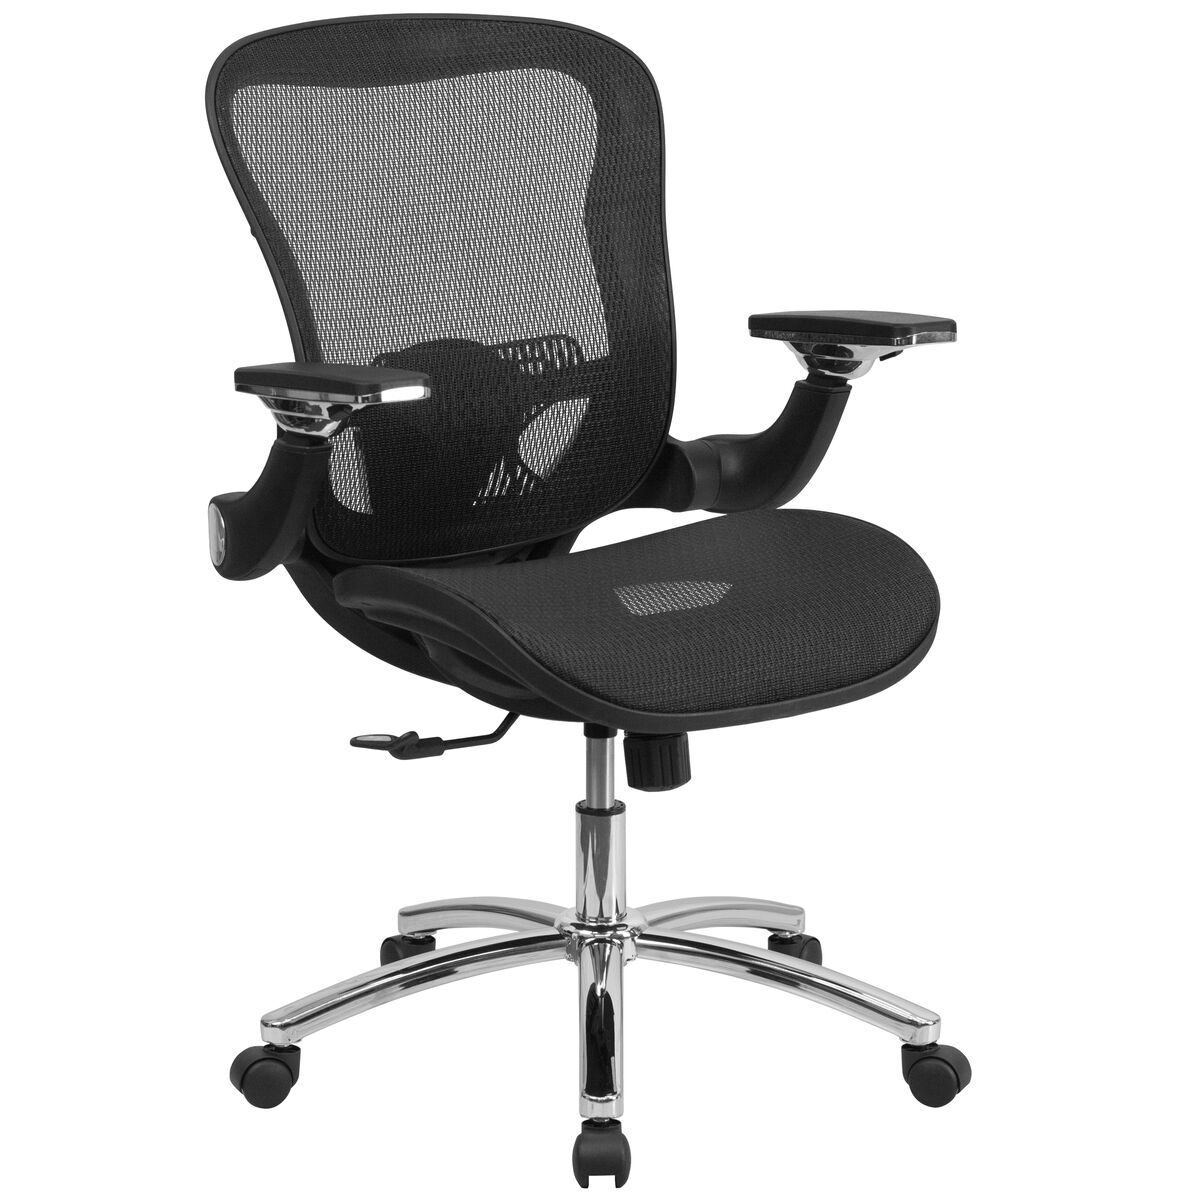 Our Mid Back Transpa Black Mesh Executive Swivel Chair With Synchro Tilt And Height